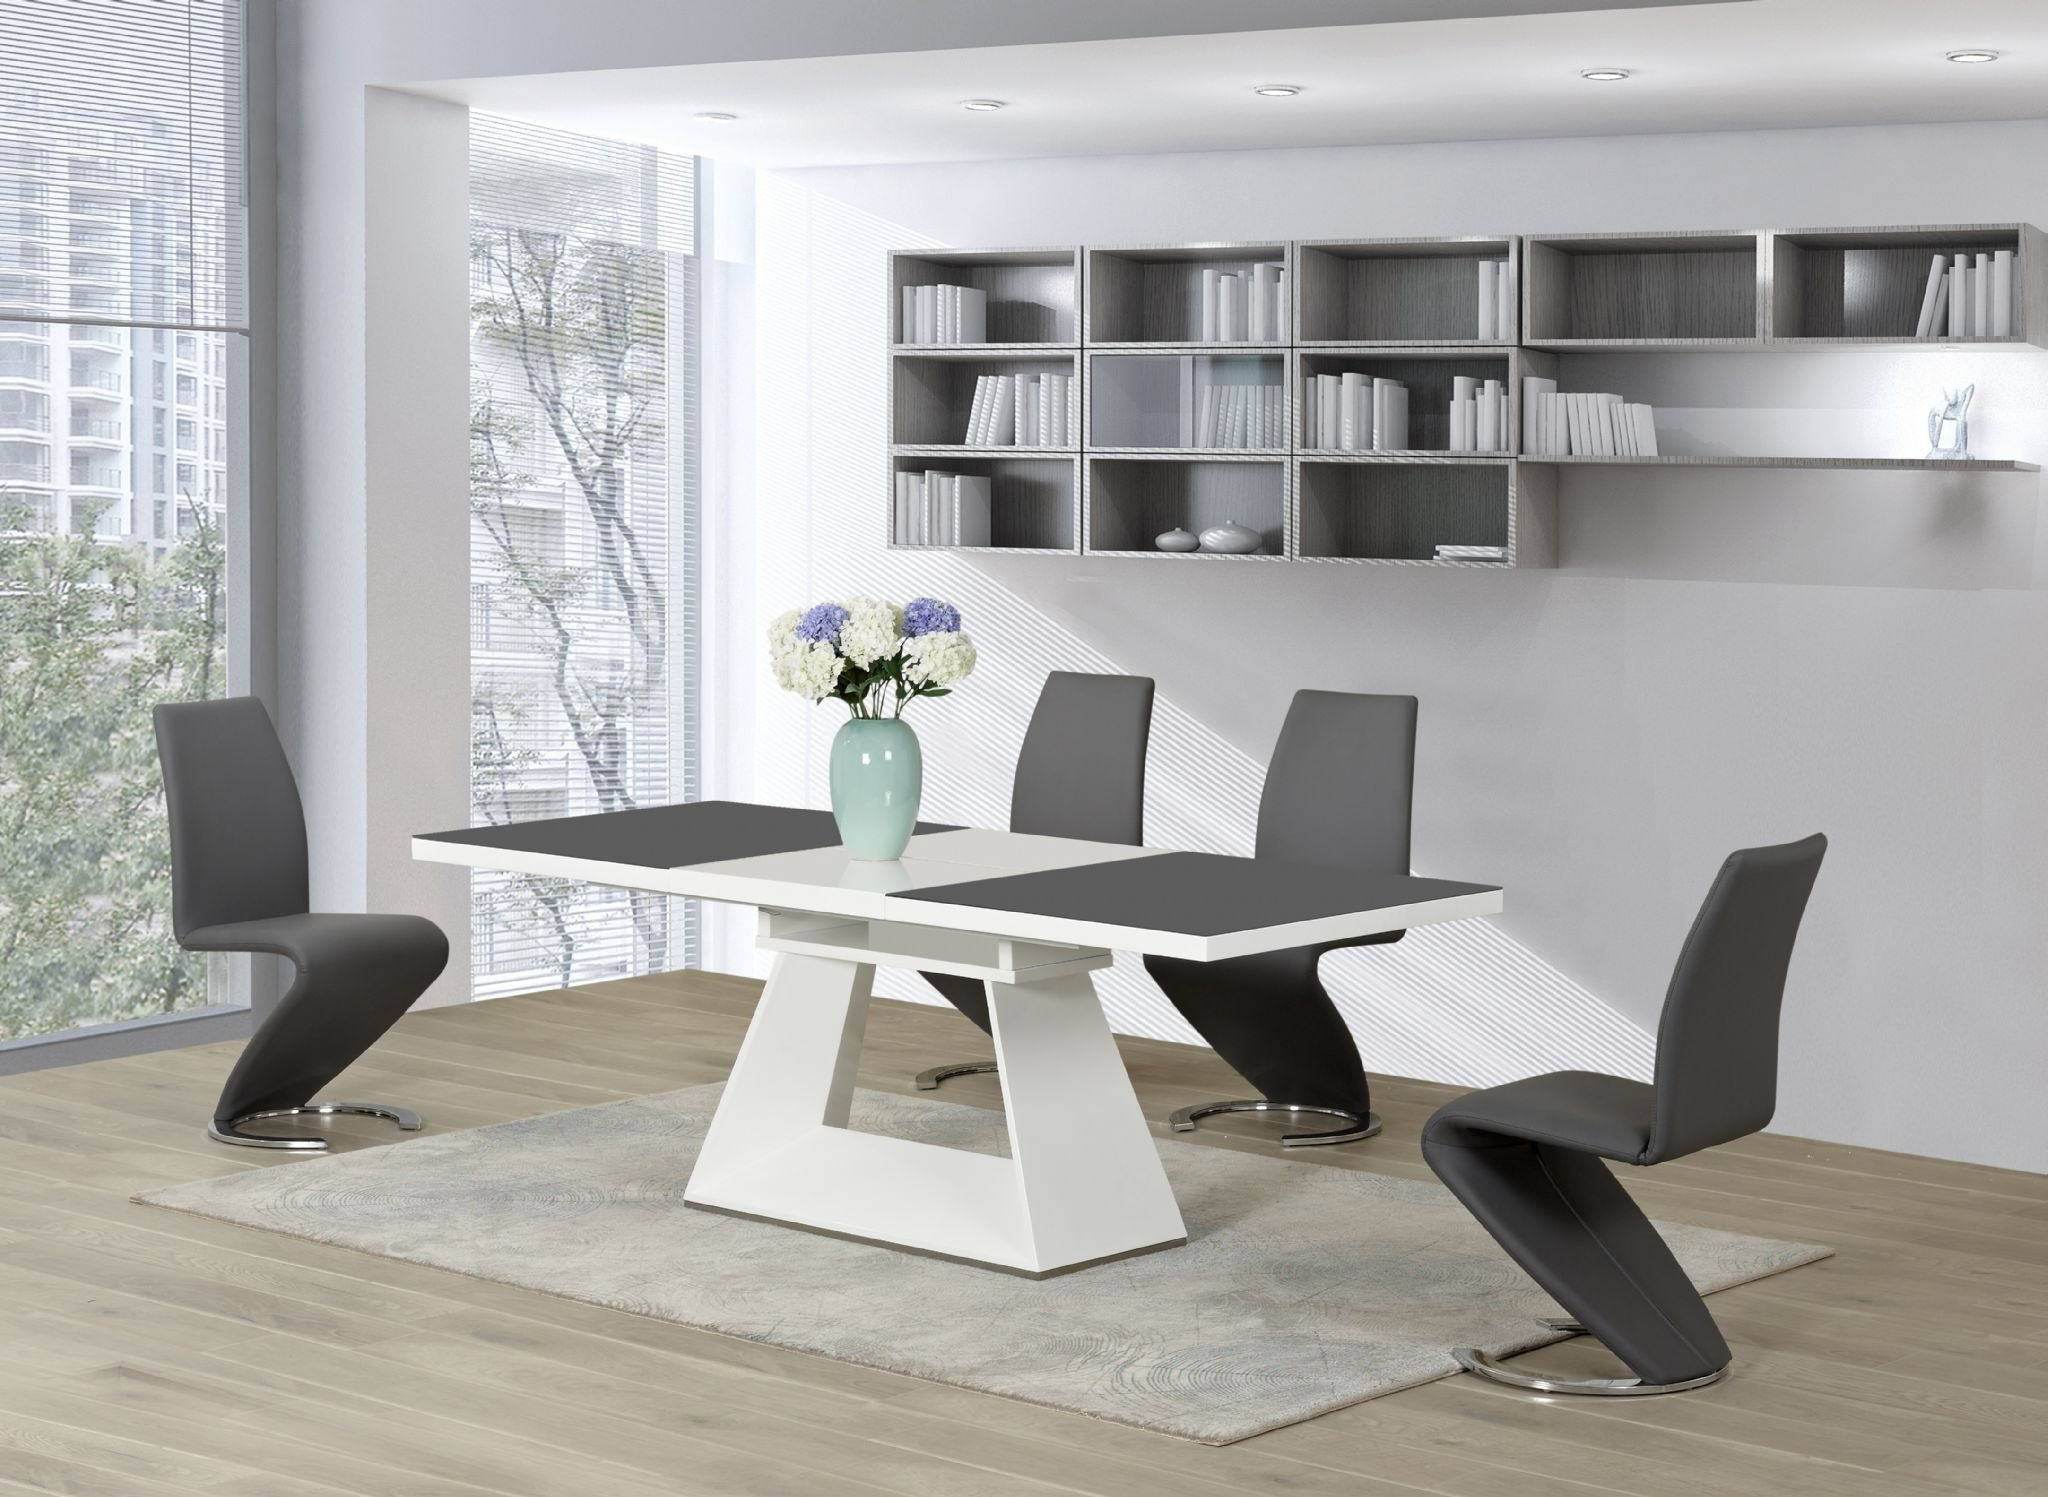 Fashionable Black Glass Extending Dining Tables 6 Chairs Pertaining To Rovigo Extending Table And Dining Hideaway Round Dunelm Chrome Glass (View 11 of 25)